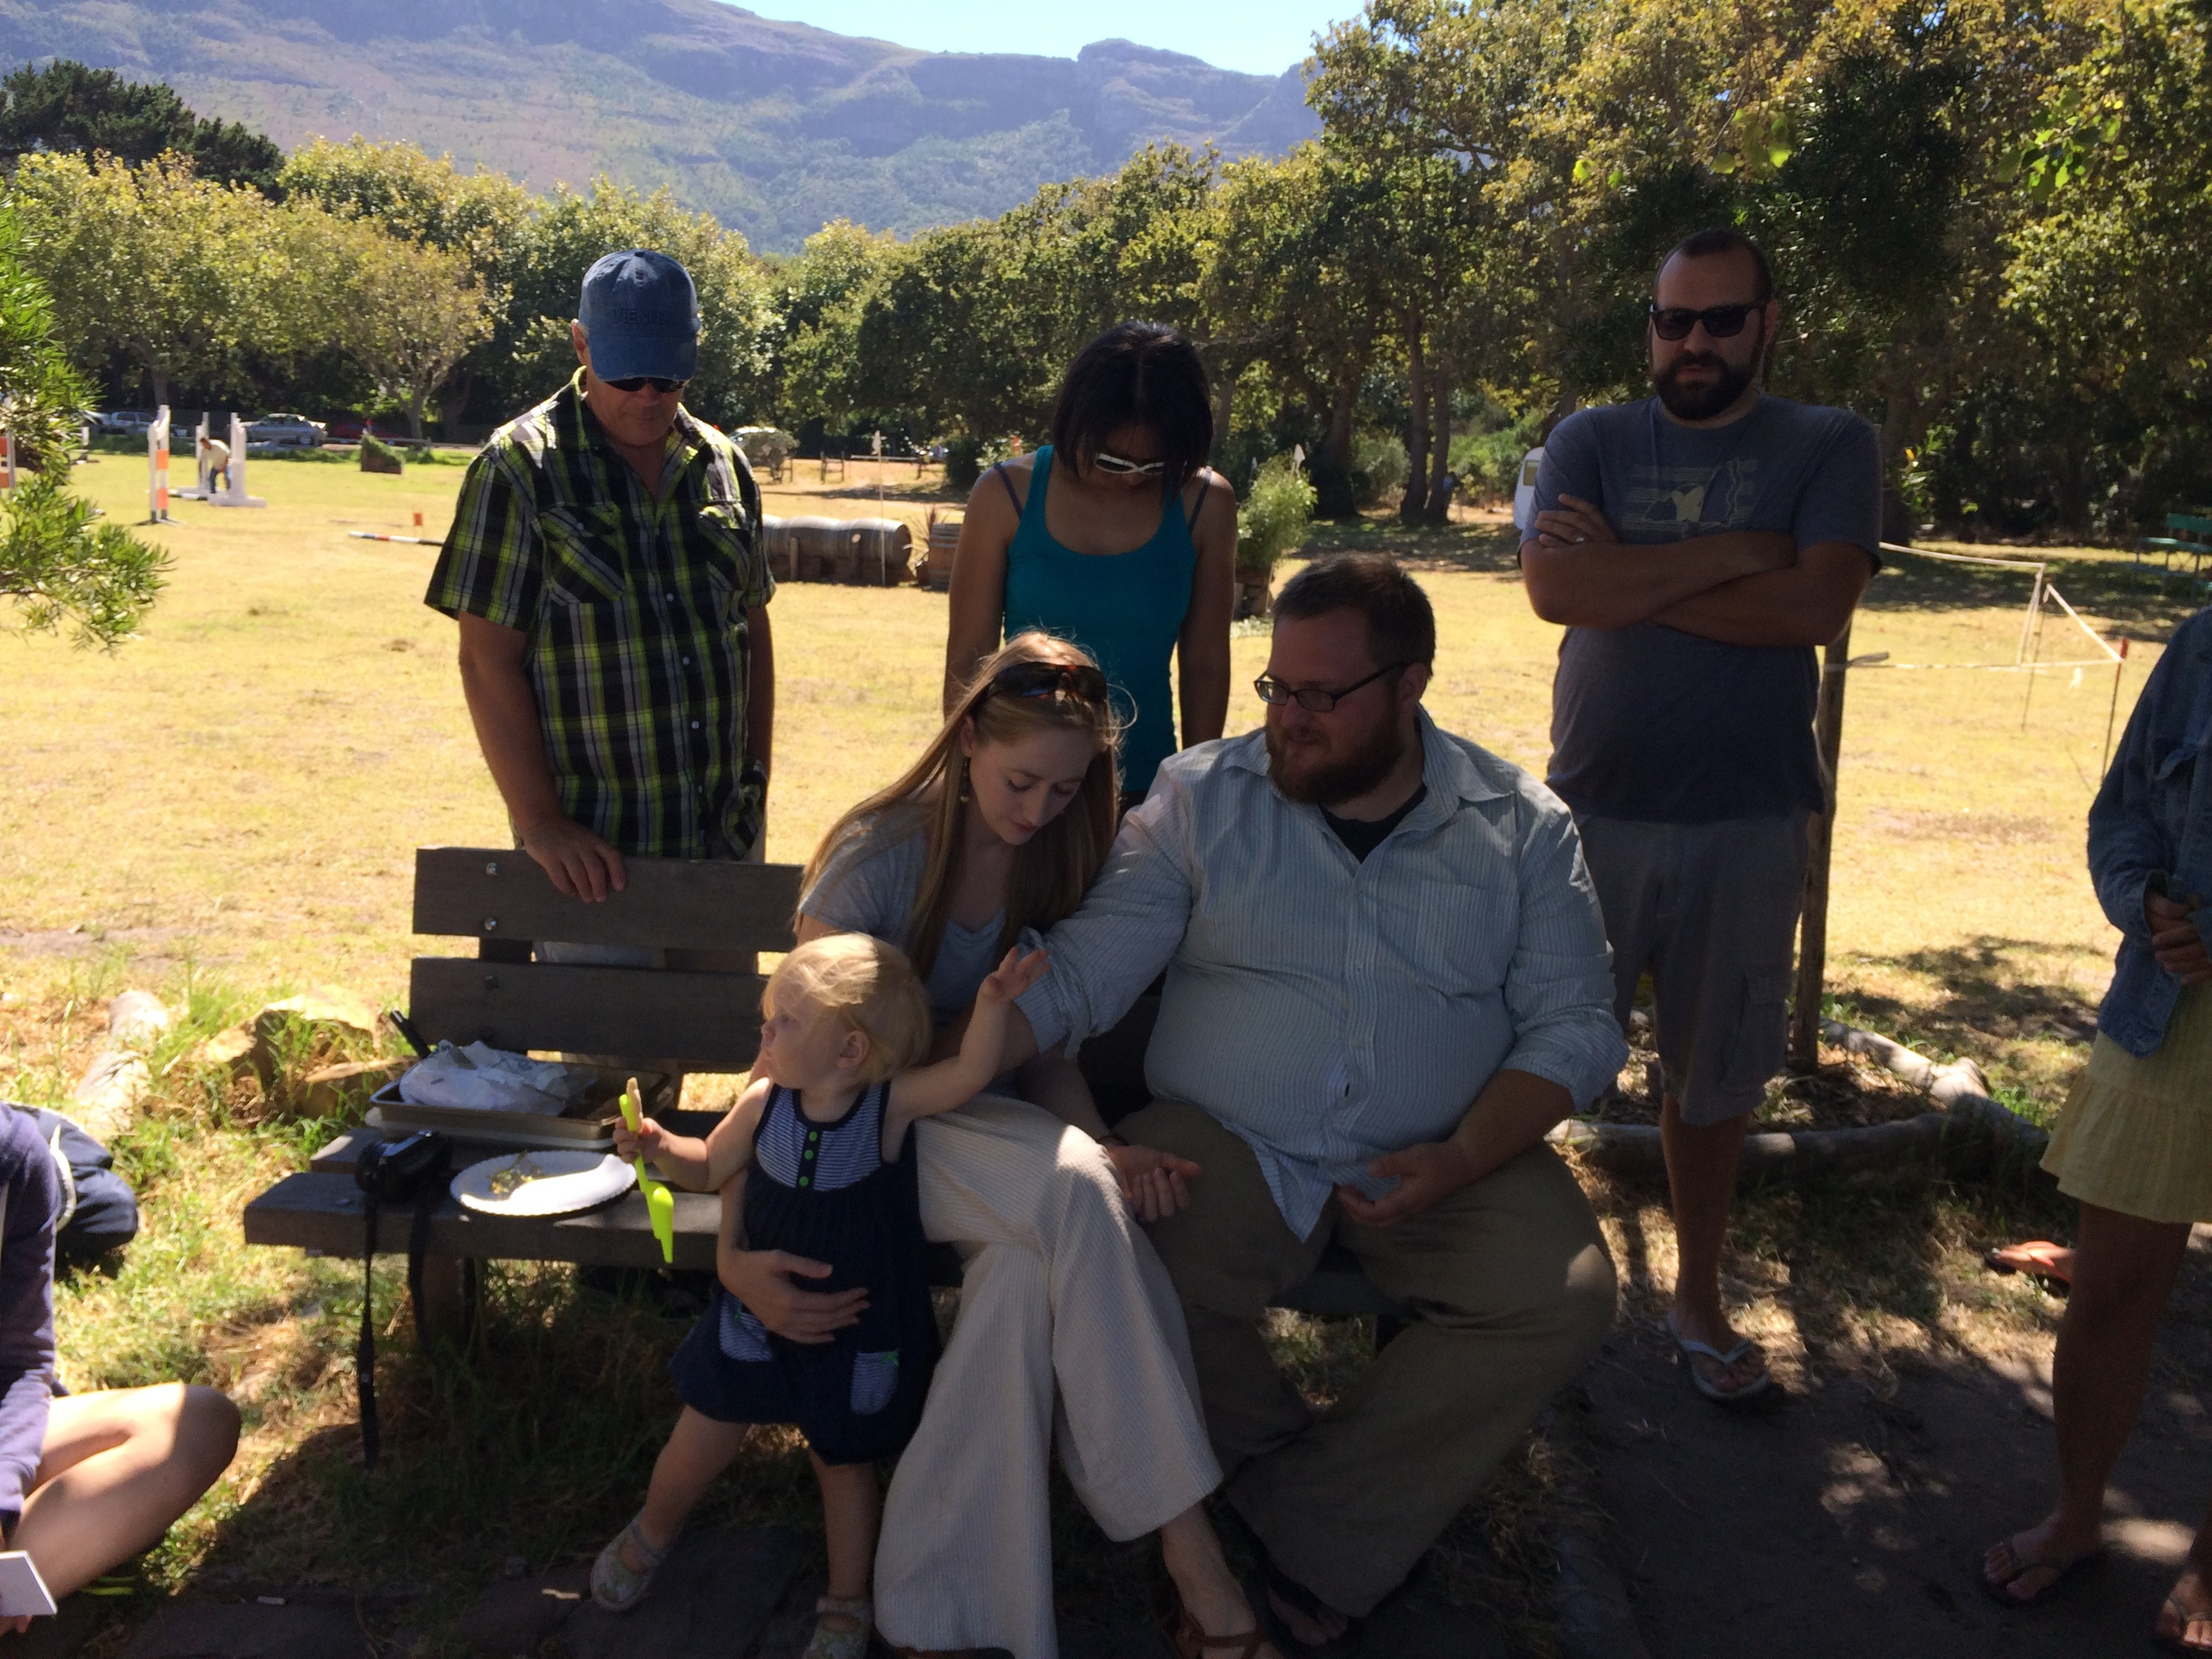 Our amazing All Nations community in Cape Town sent us out so wonderfully in March. Here, some of our community prays over us at our farewell picnic.